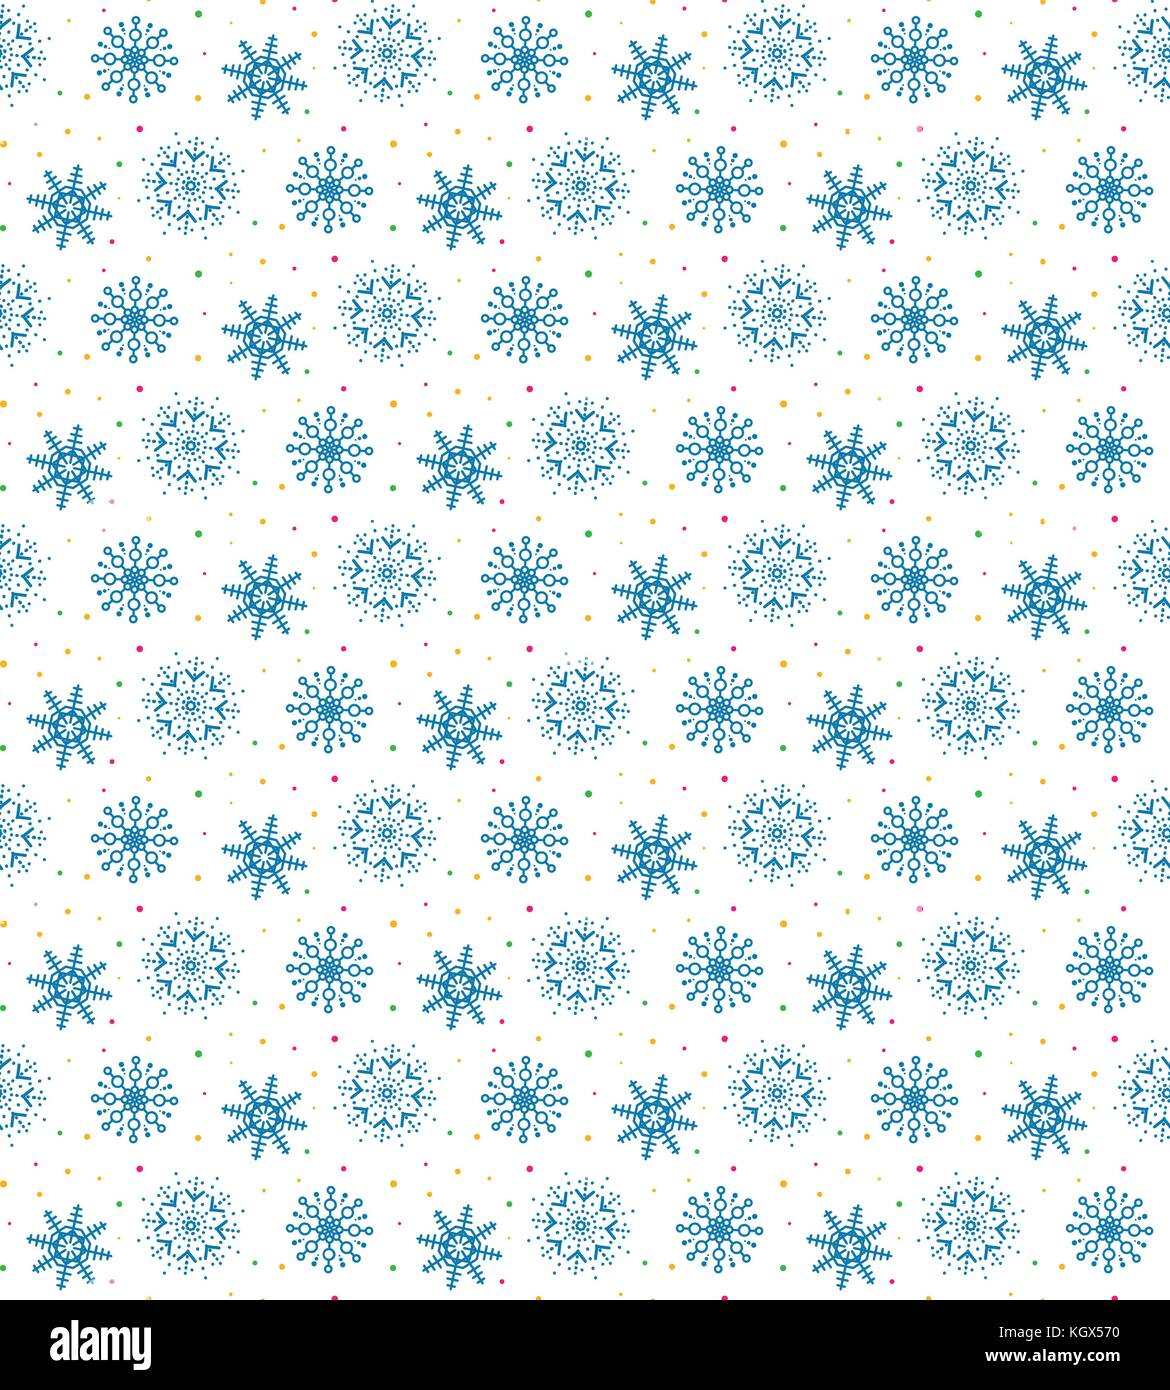 Seamless pattern of many snowflakes. Soft Christmas winter theme for gift wrapping. New Year seamless background - Stock Image